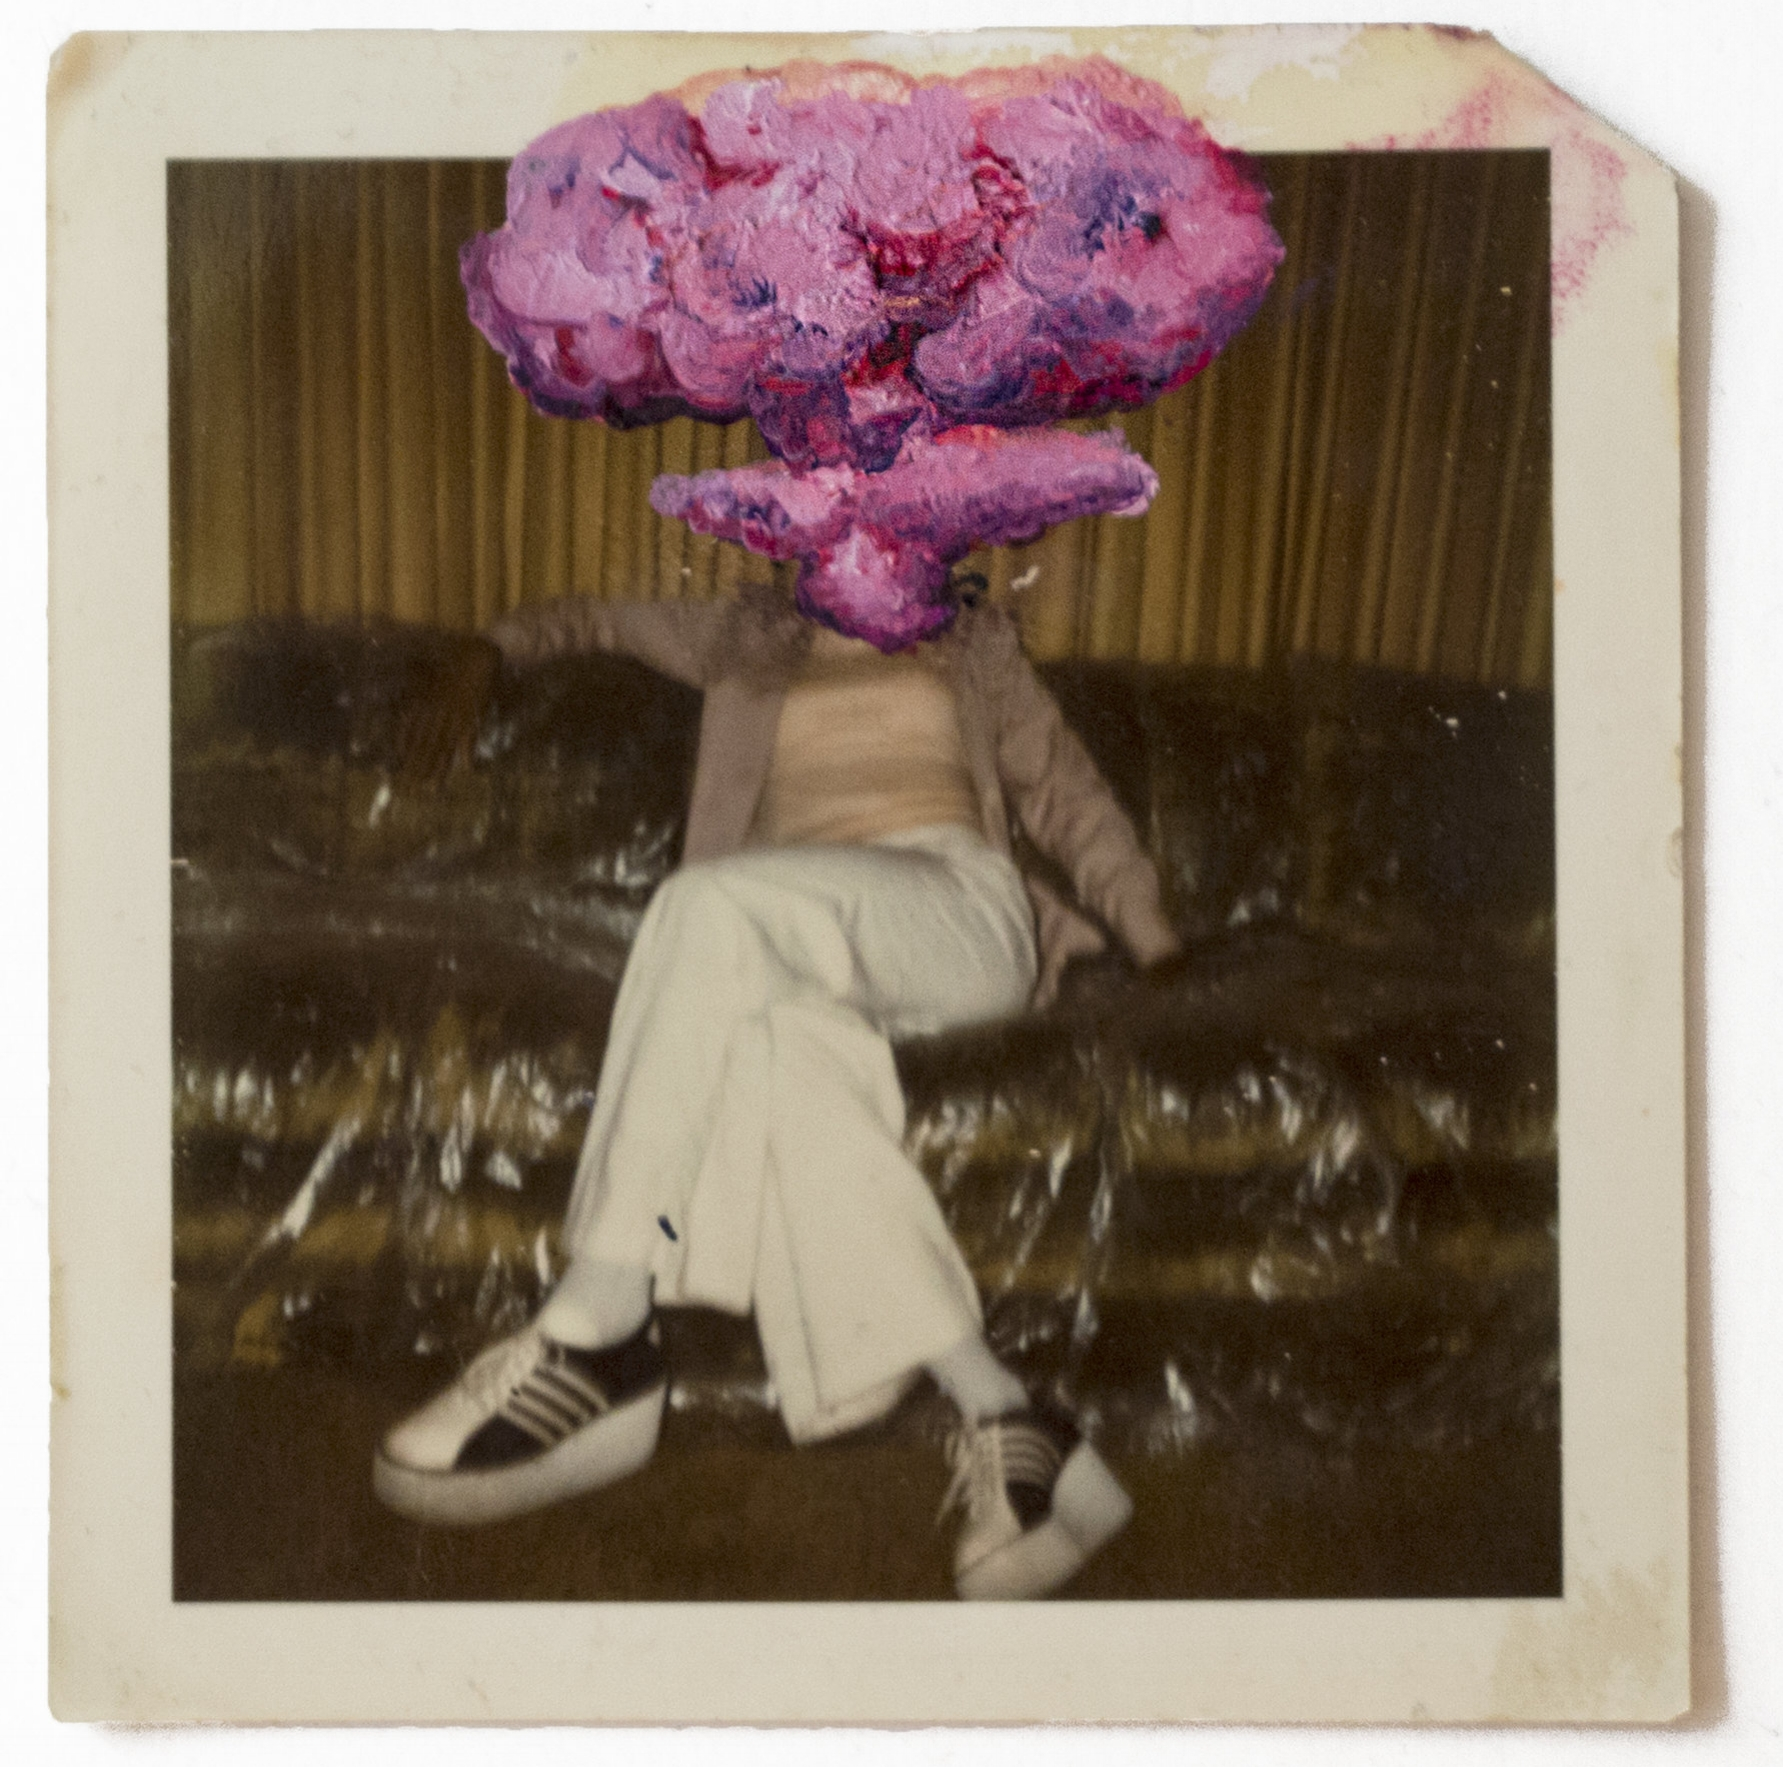 - |NUCLEAR FAMILY|    MASKED MEMORIESoil on vintage photograph